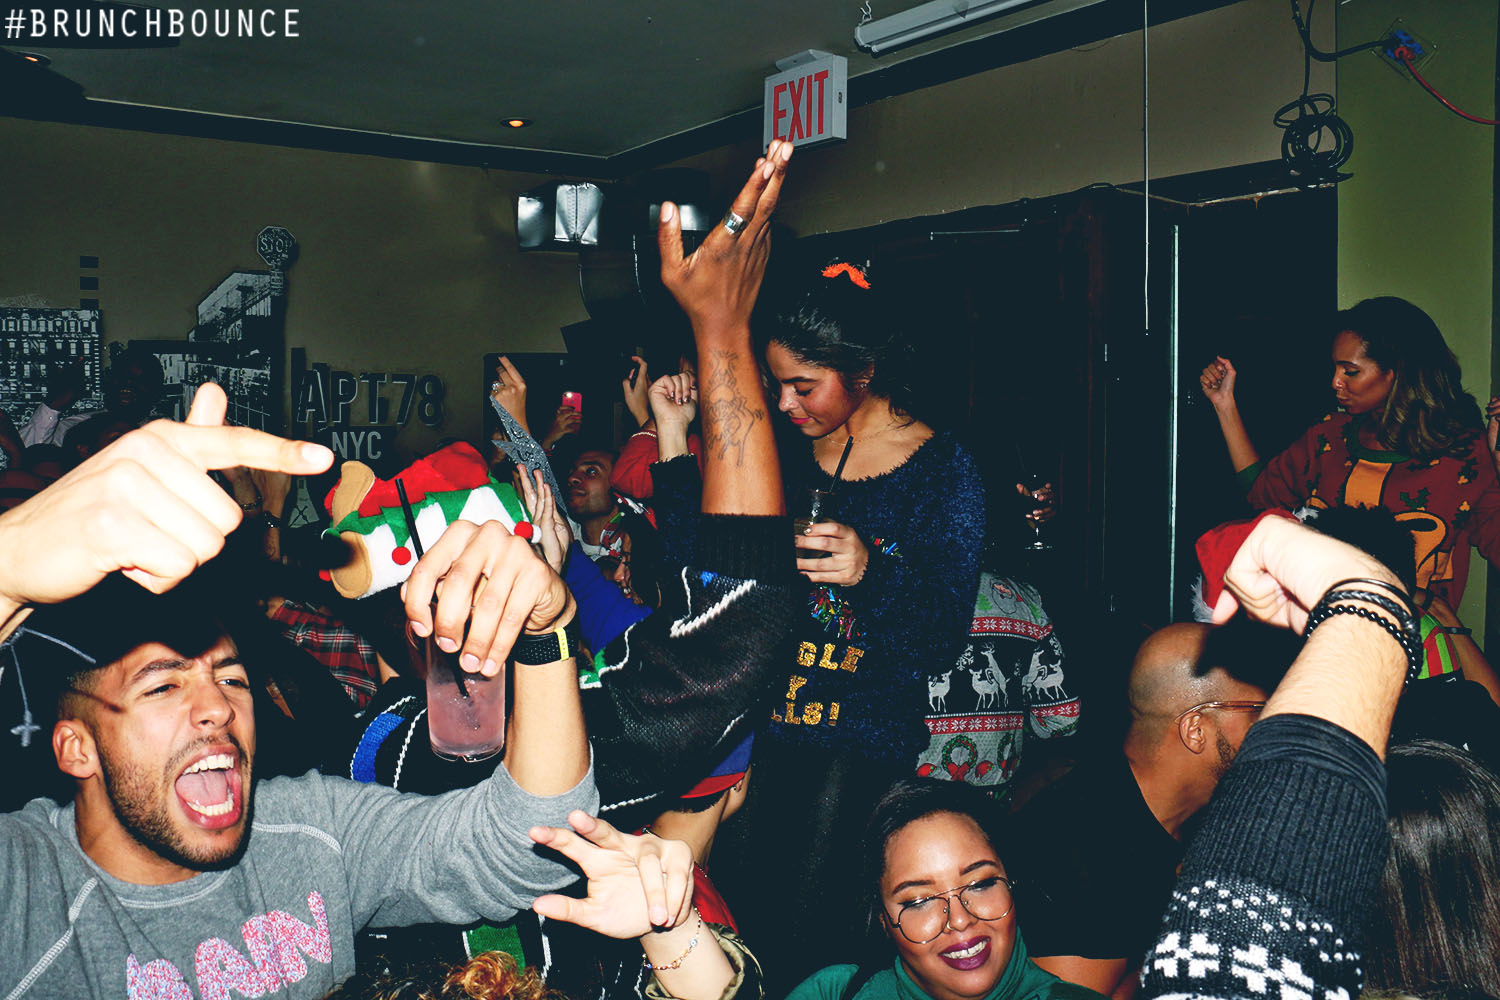 brunchbounce-ugly-christmas-sweater-party-122014_15460416574_o.jpg